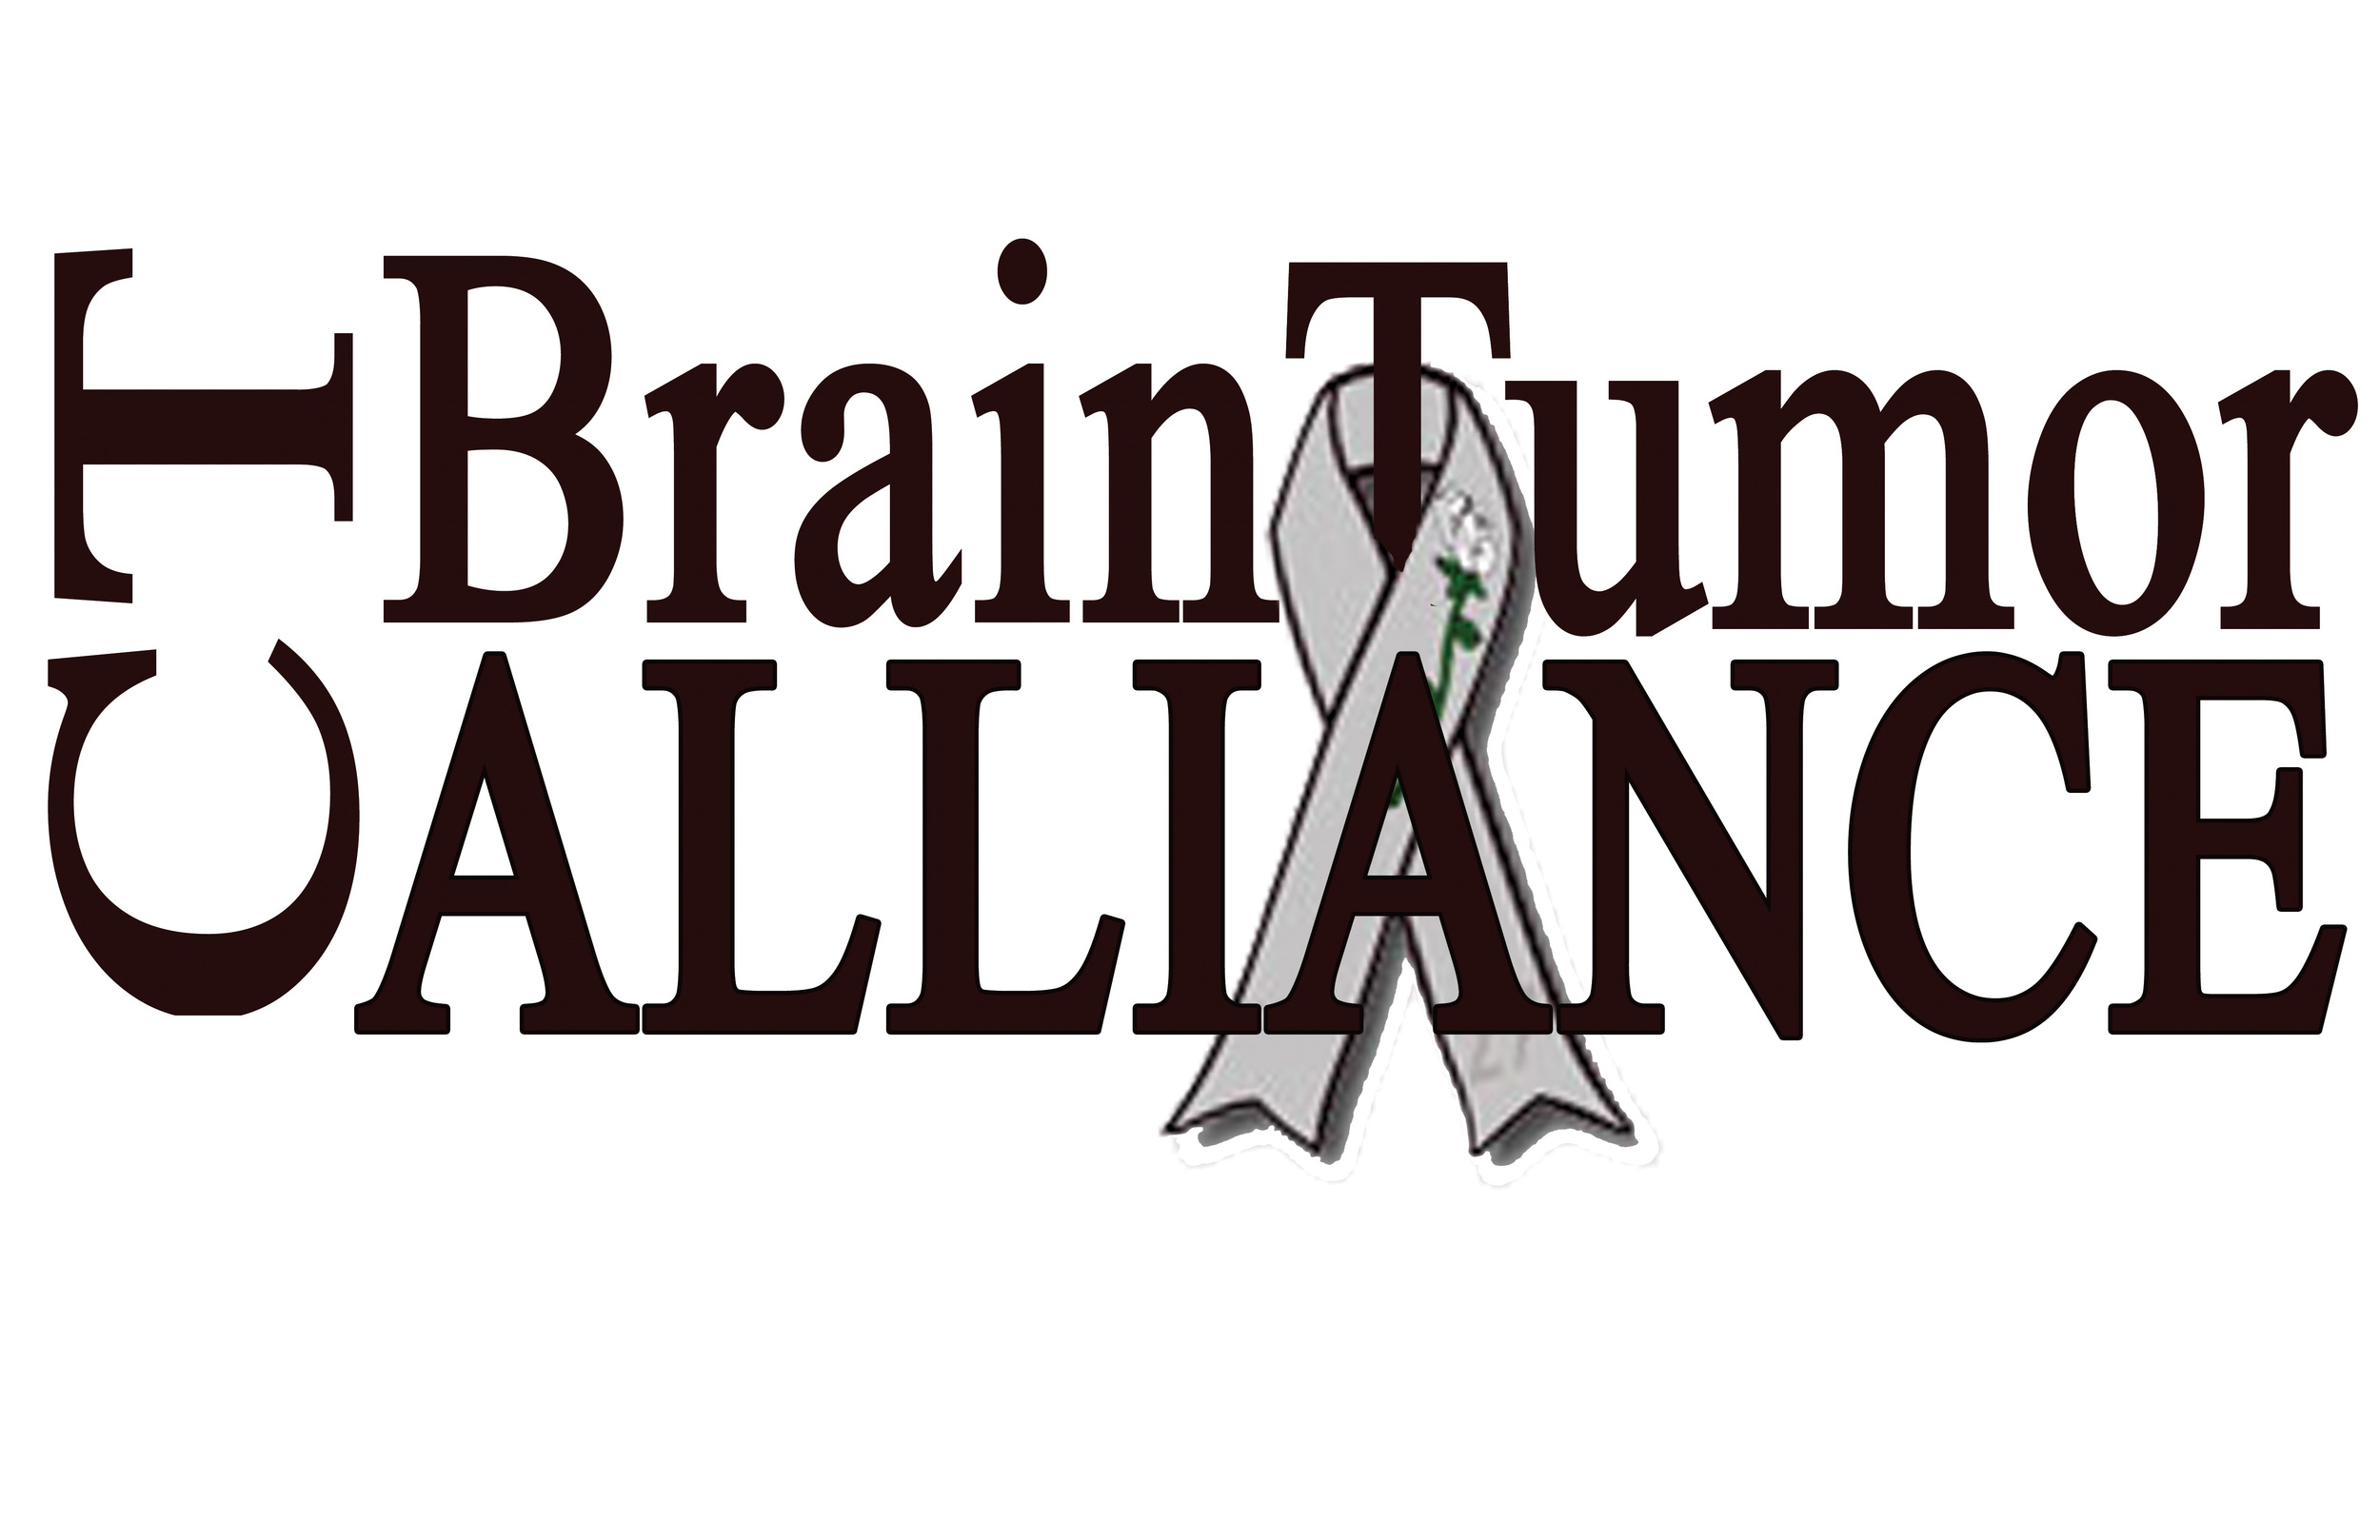 Connecticut Brain Tumor Association